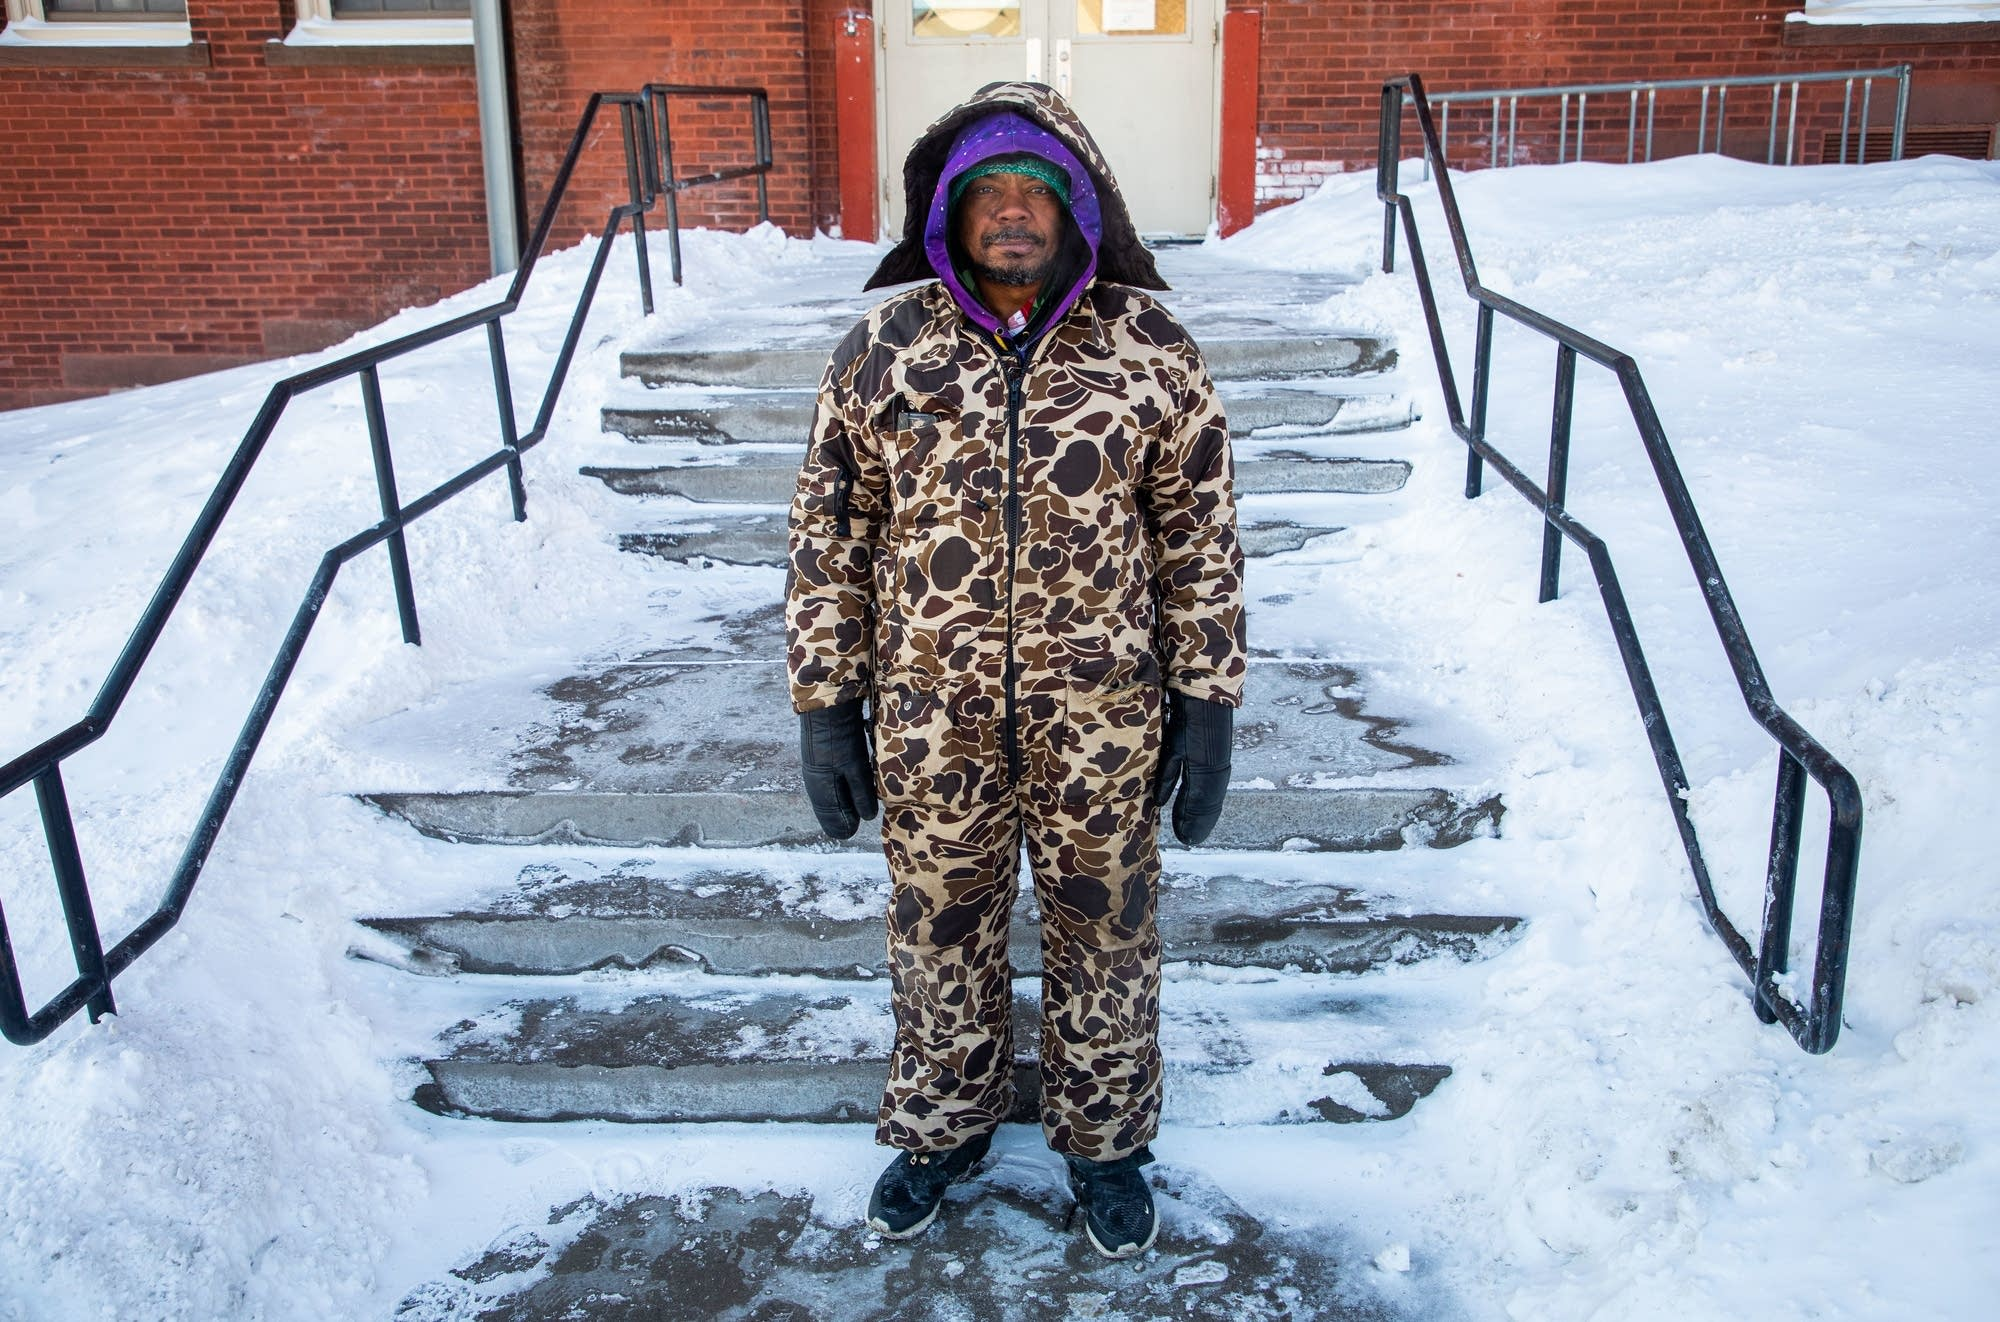 Antwoain Buchanan wore three layers and a snowsuit to stave off the cold.